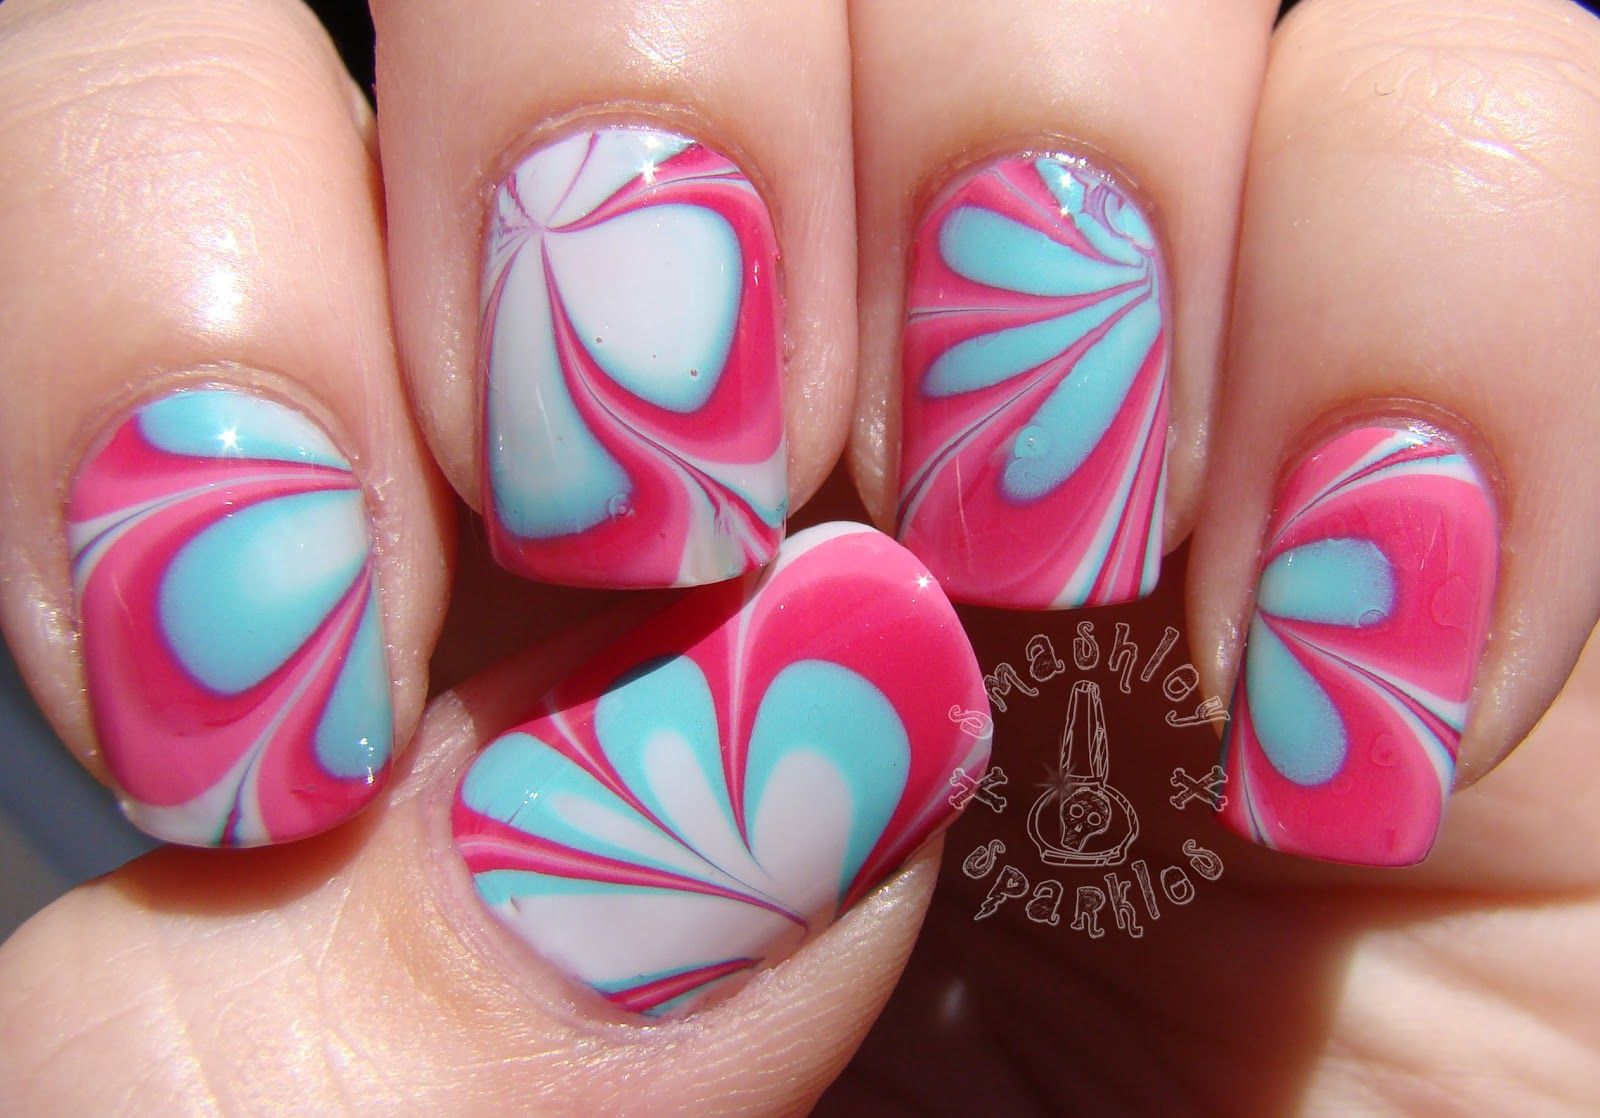 water marbled birthday nails - Google Search | Nails and makeup ...